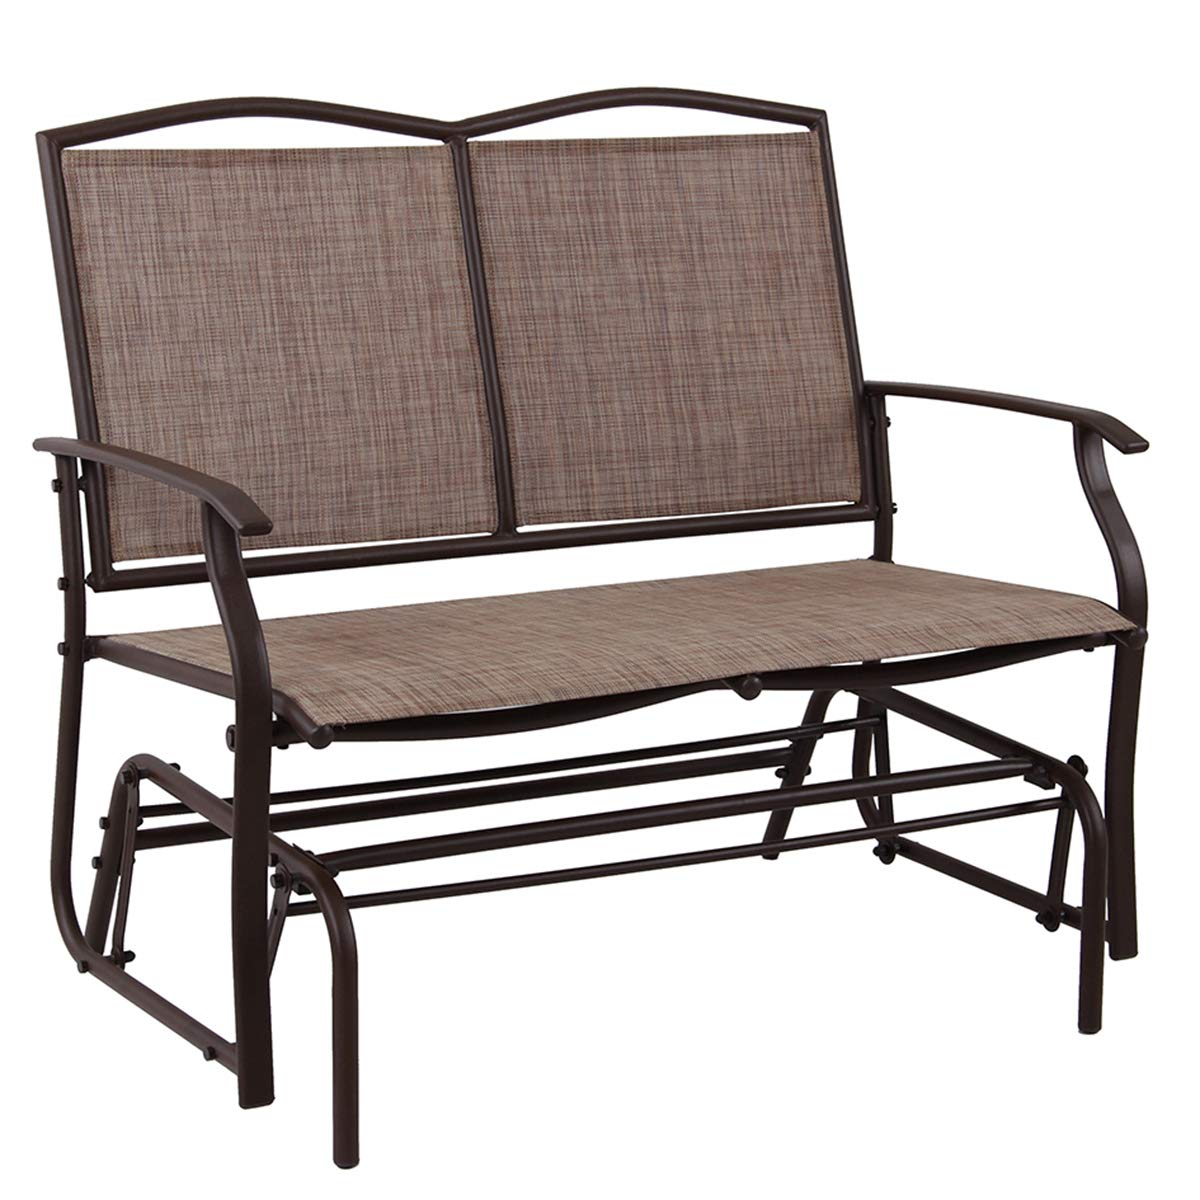 PHI VILLA Patio Swing Glider Bench for 2 Persons Rocking Chair, Garden Loveseat Outdoor Furniture by PHI VILLA